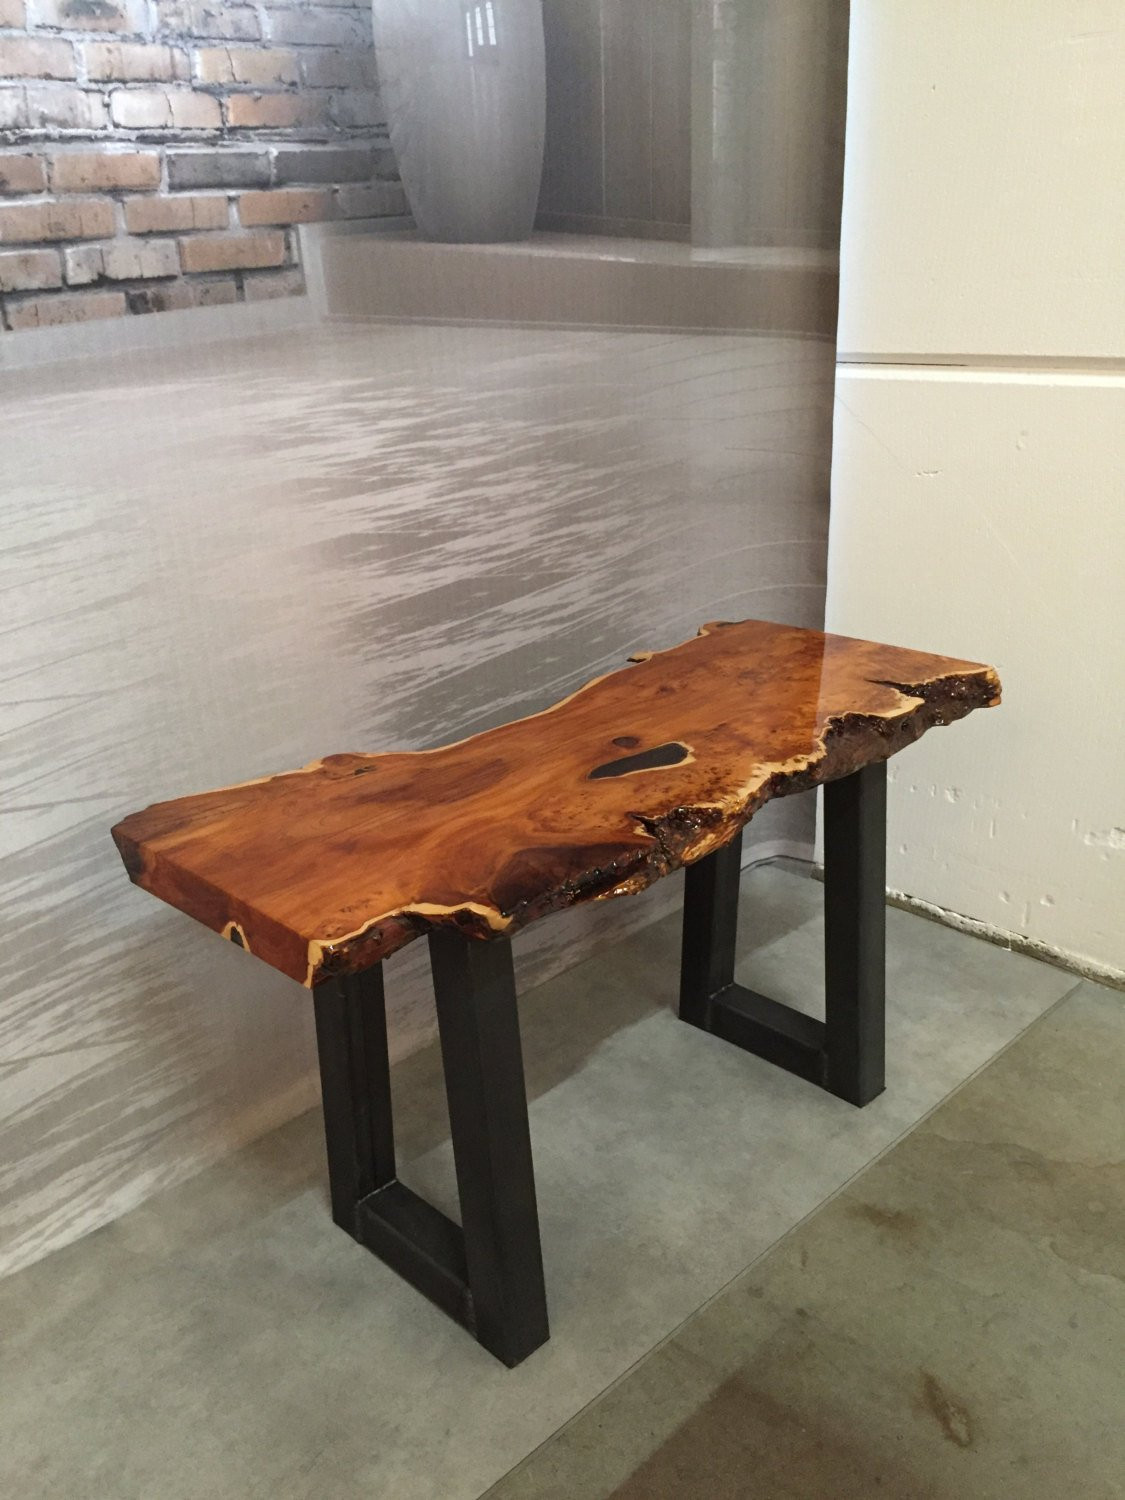 Best ideas about Resin Coffee Table . Save or Pin Coffee Table in epoxy resin Now.